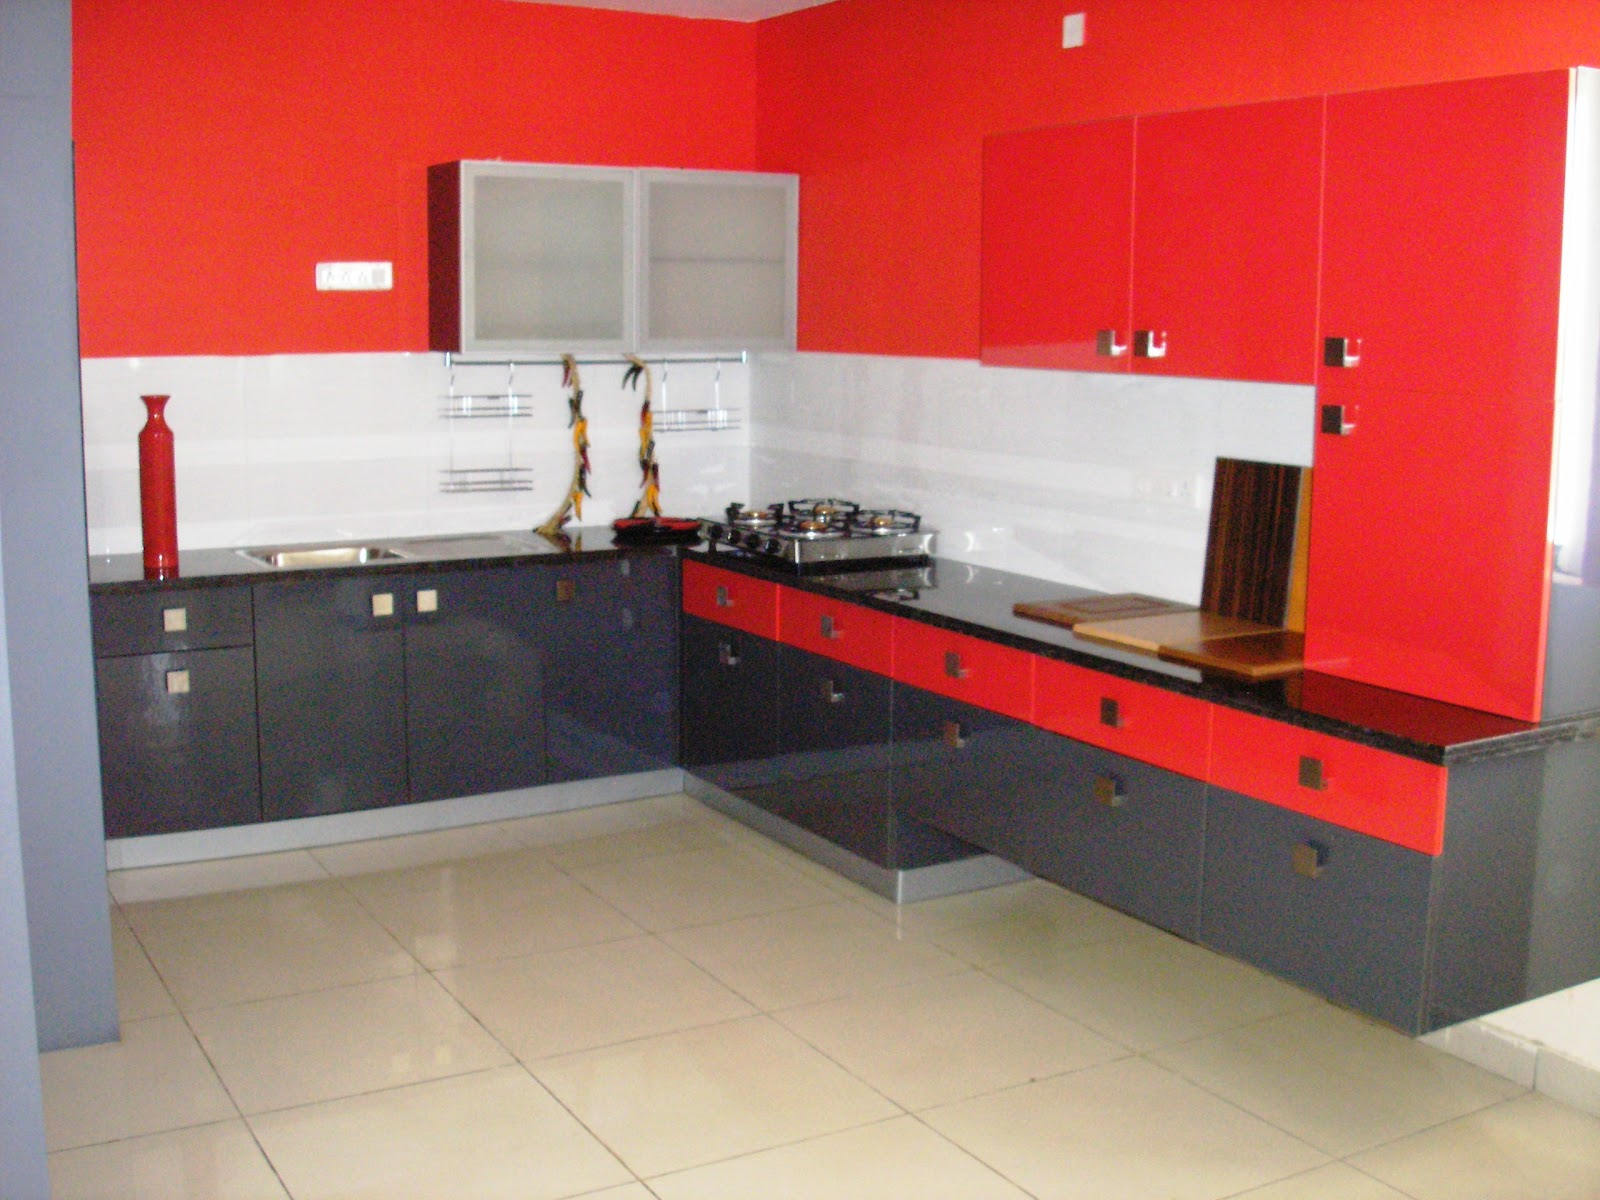 Furniture guru modular kitchens in bangalore interview of rajeev iki - Modular kitchen designers in bangalore ...